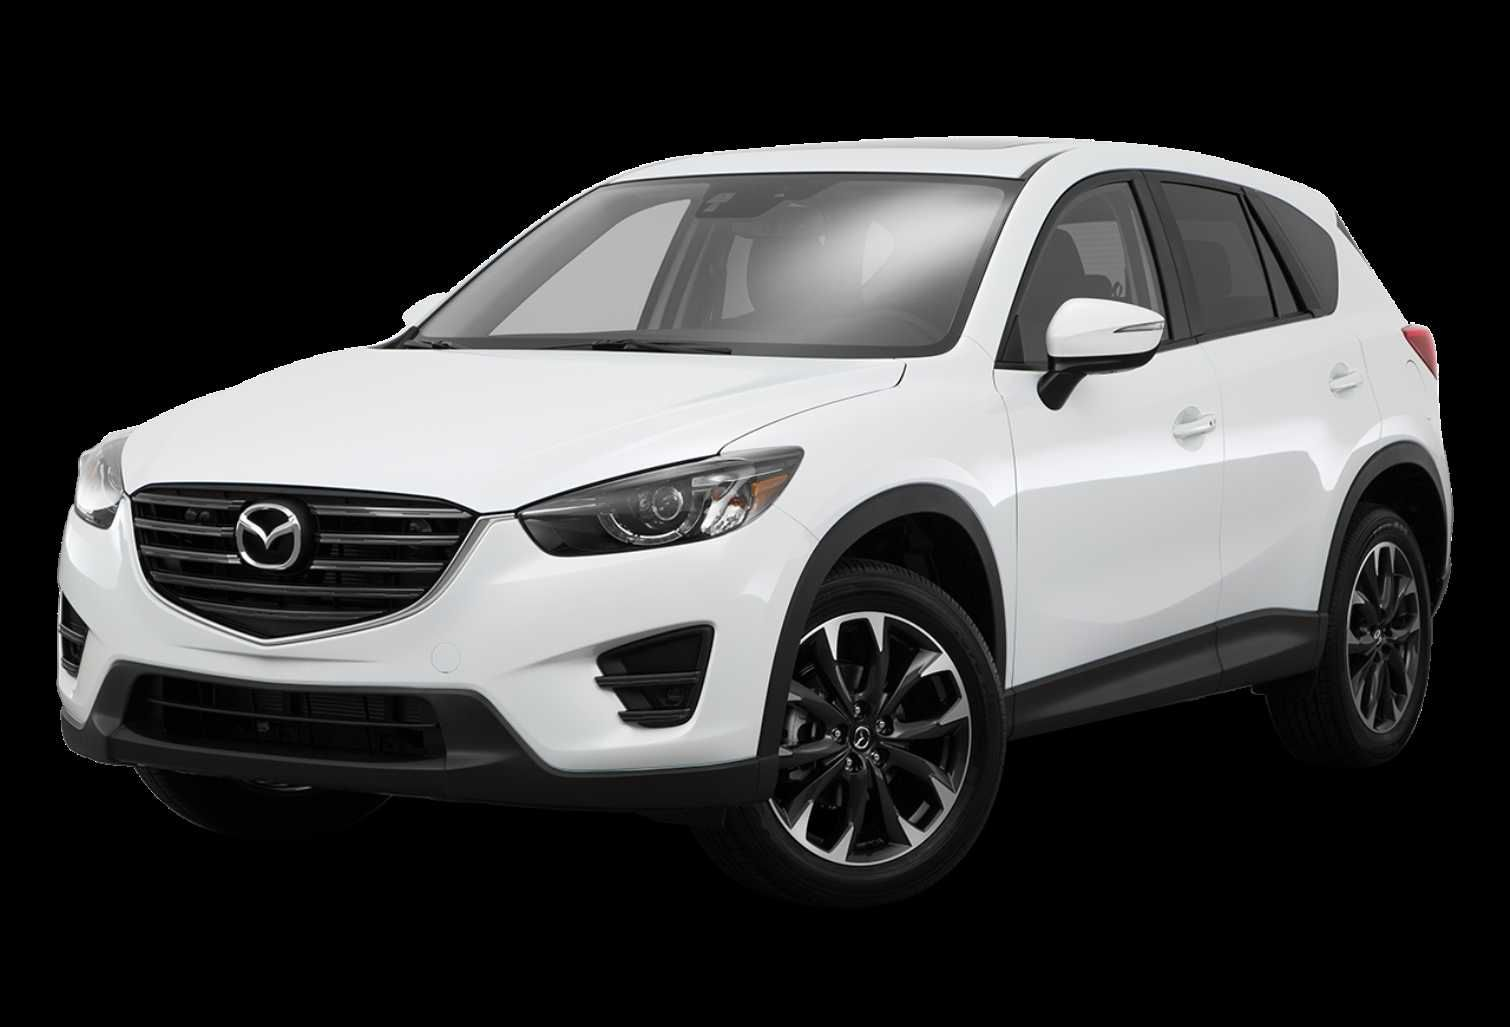 2016 Mazda CX5 White MAZDA Pinterest Mazda, Cars